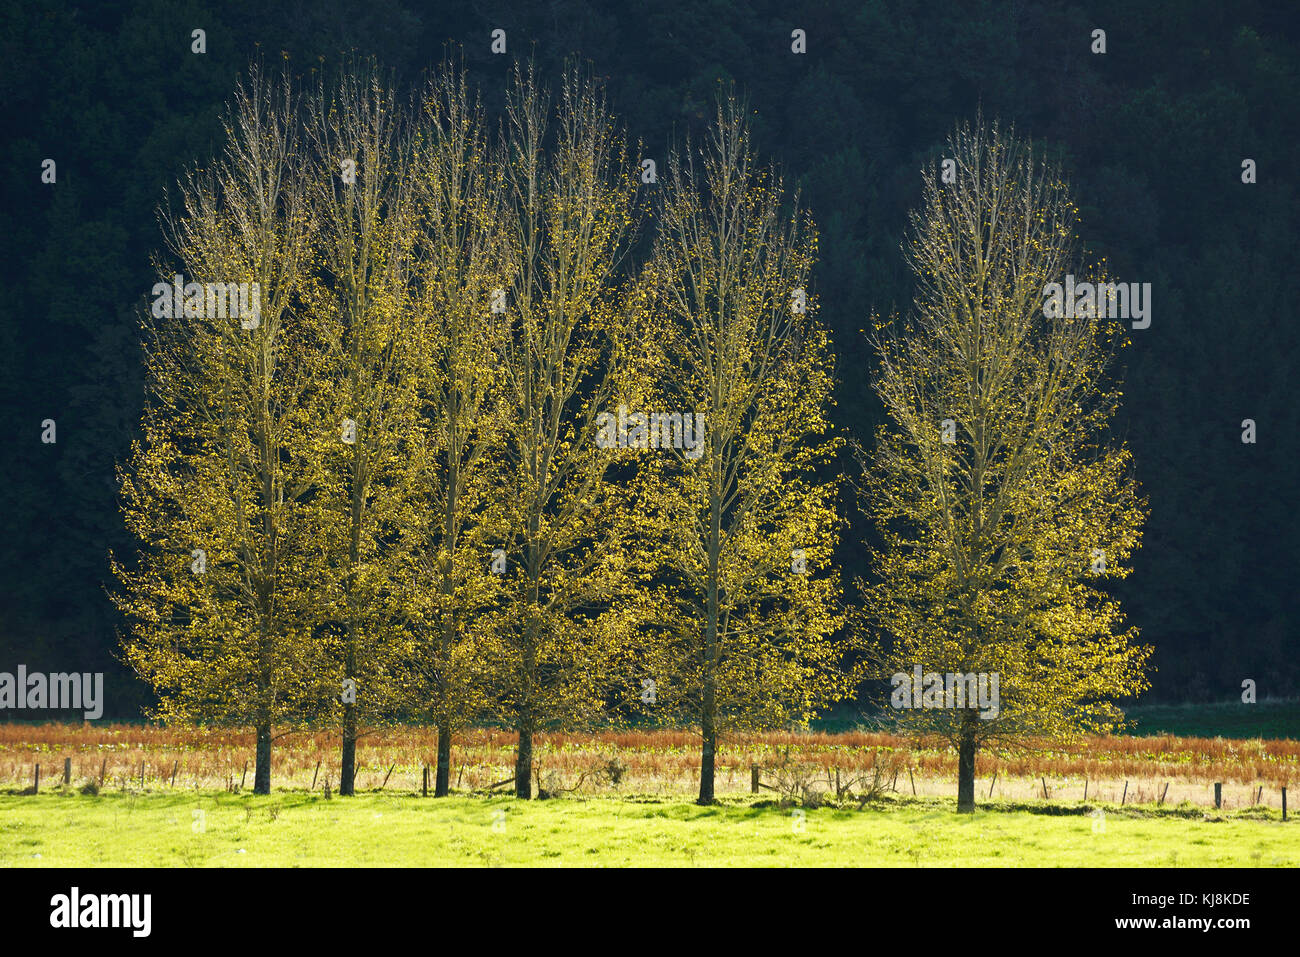 Backlighting sets a glow among a row of poplars on a farm on the West Coast of New Zealand - Stock Image